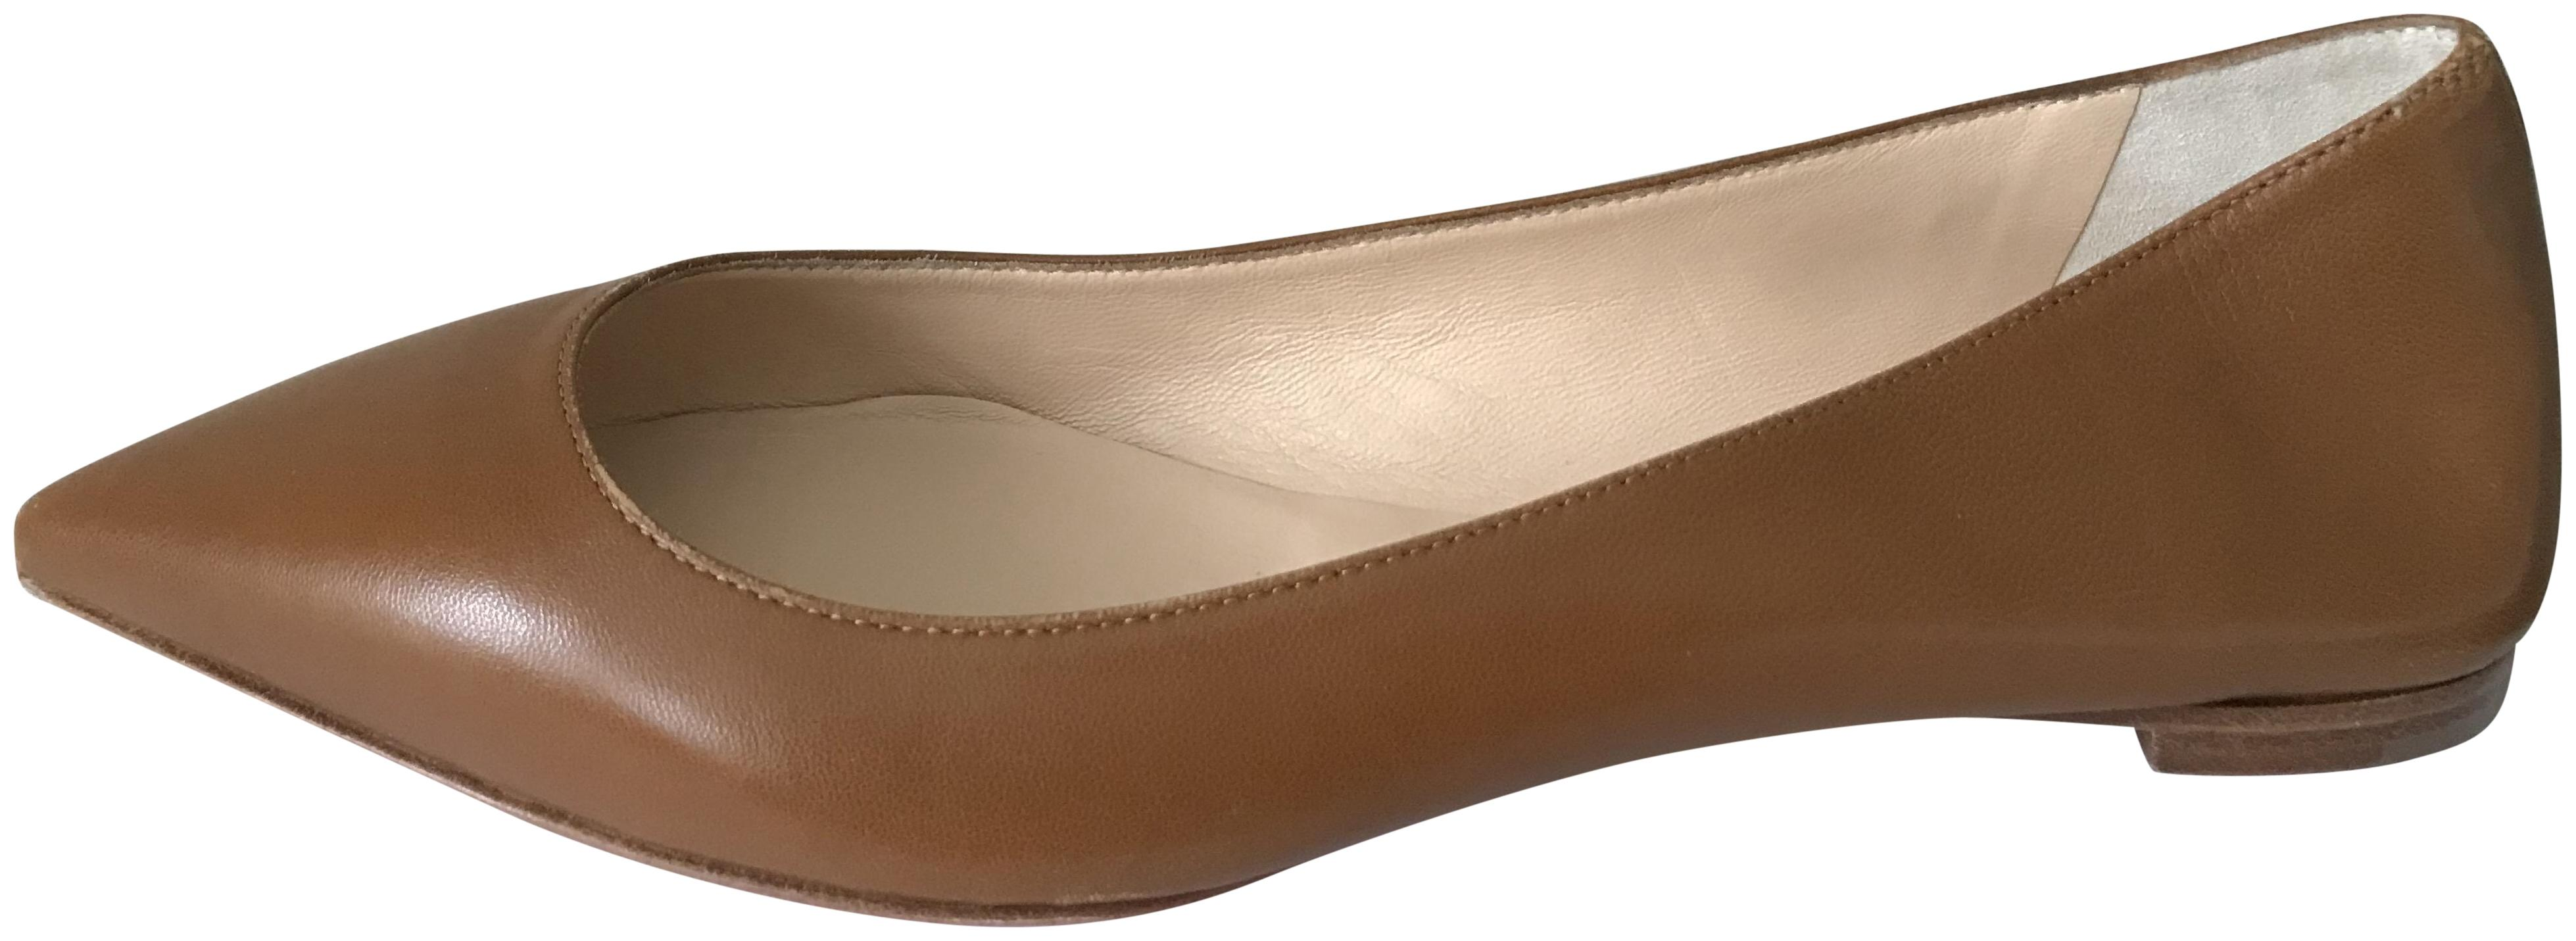 Christian Louboutin Safari (Brown) Ballalla Leather Ballerina Ballet Flats Size EU 37.5 (Approx. US 7.5) Regular (M, B)